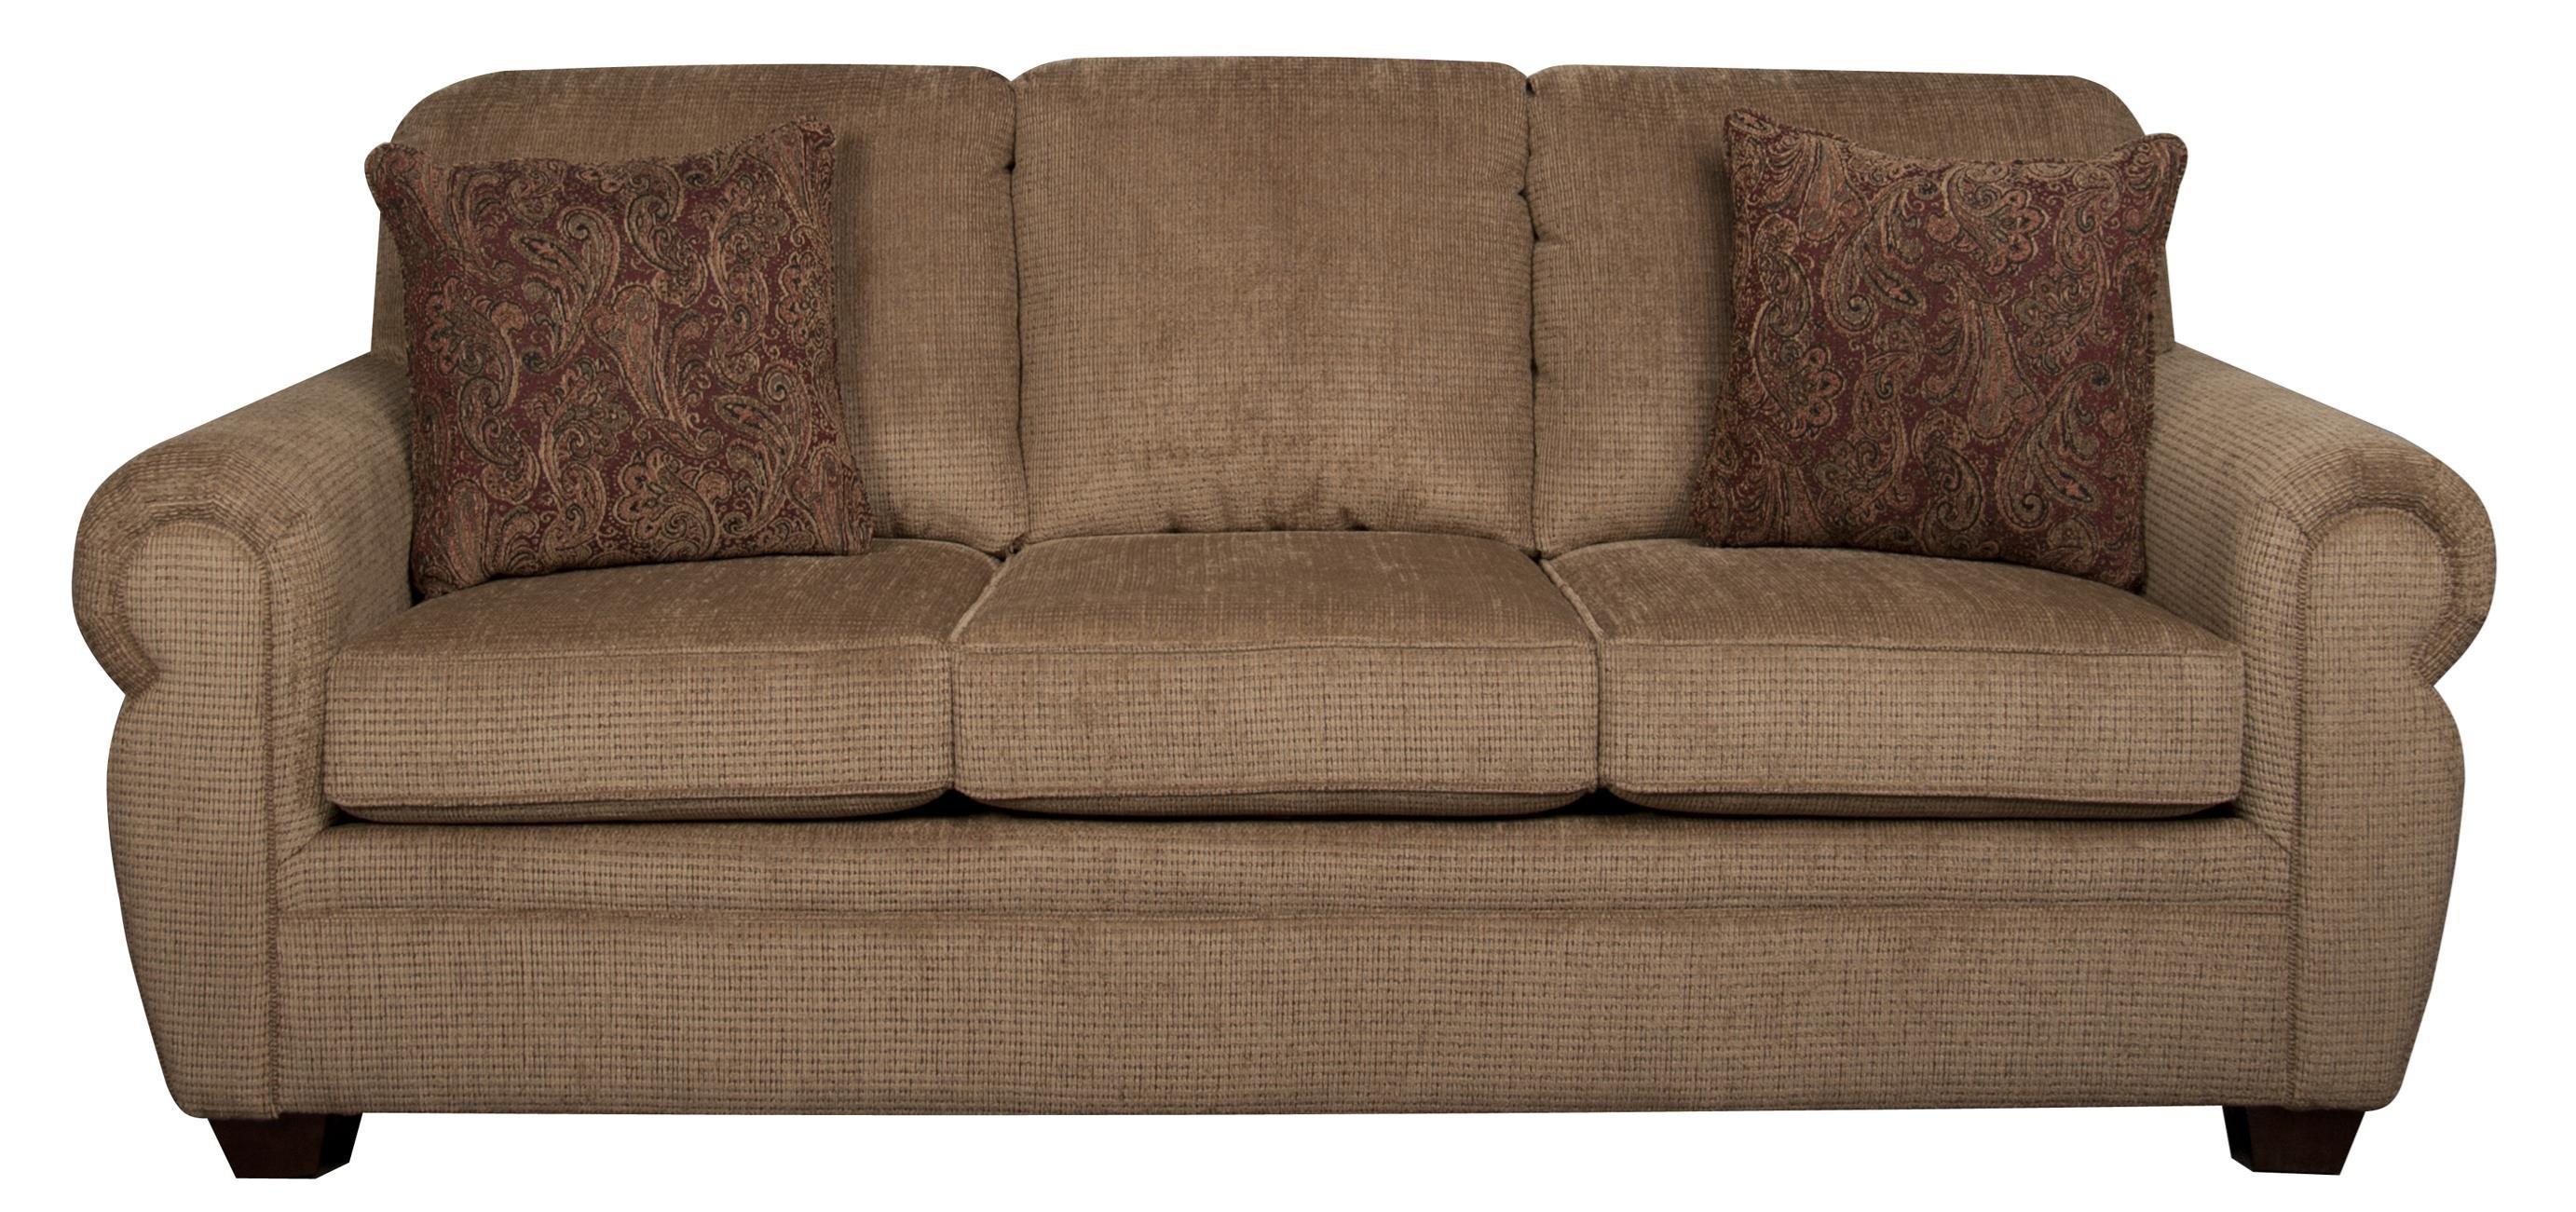 Elliston Place Marjorie Marjorie Sofa - Item Number: 955805367